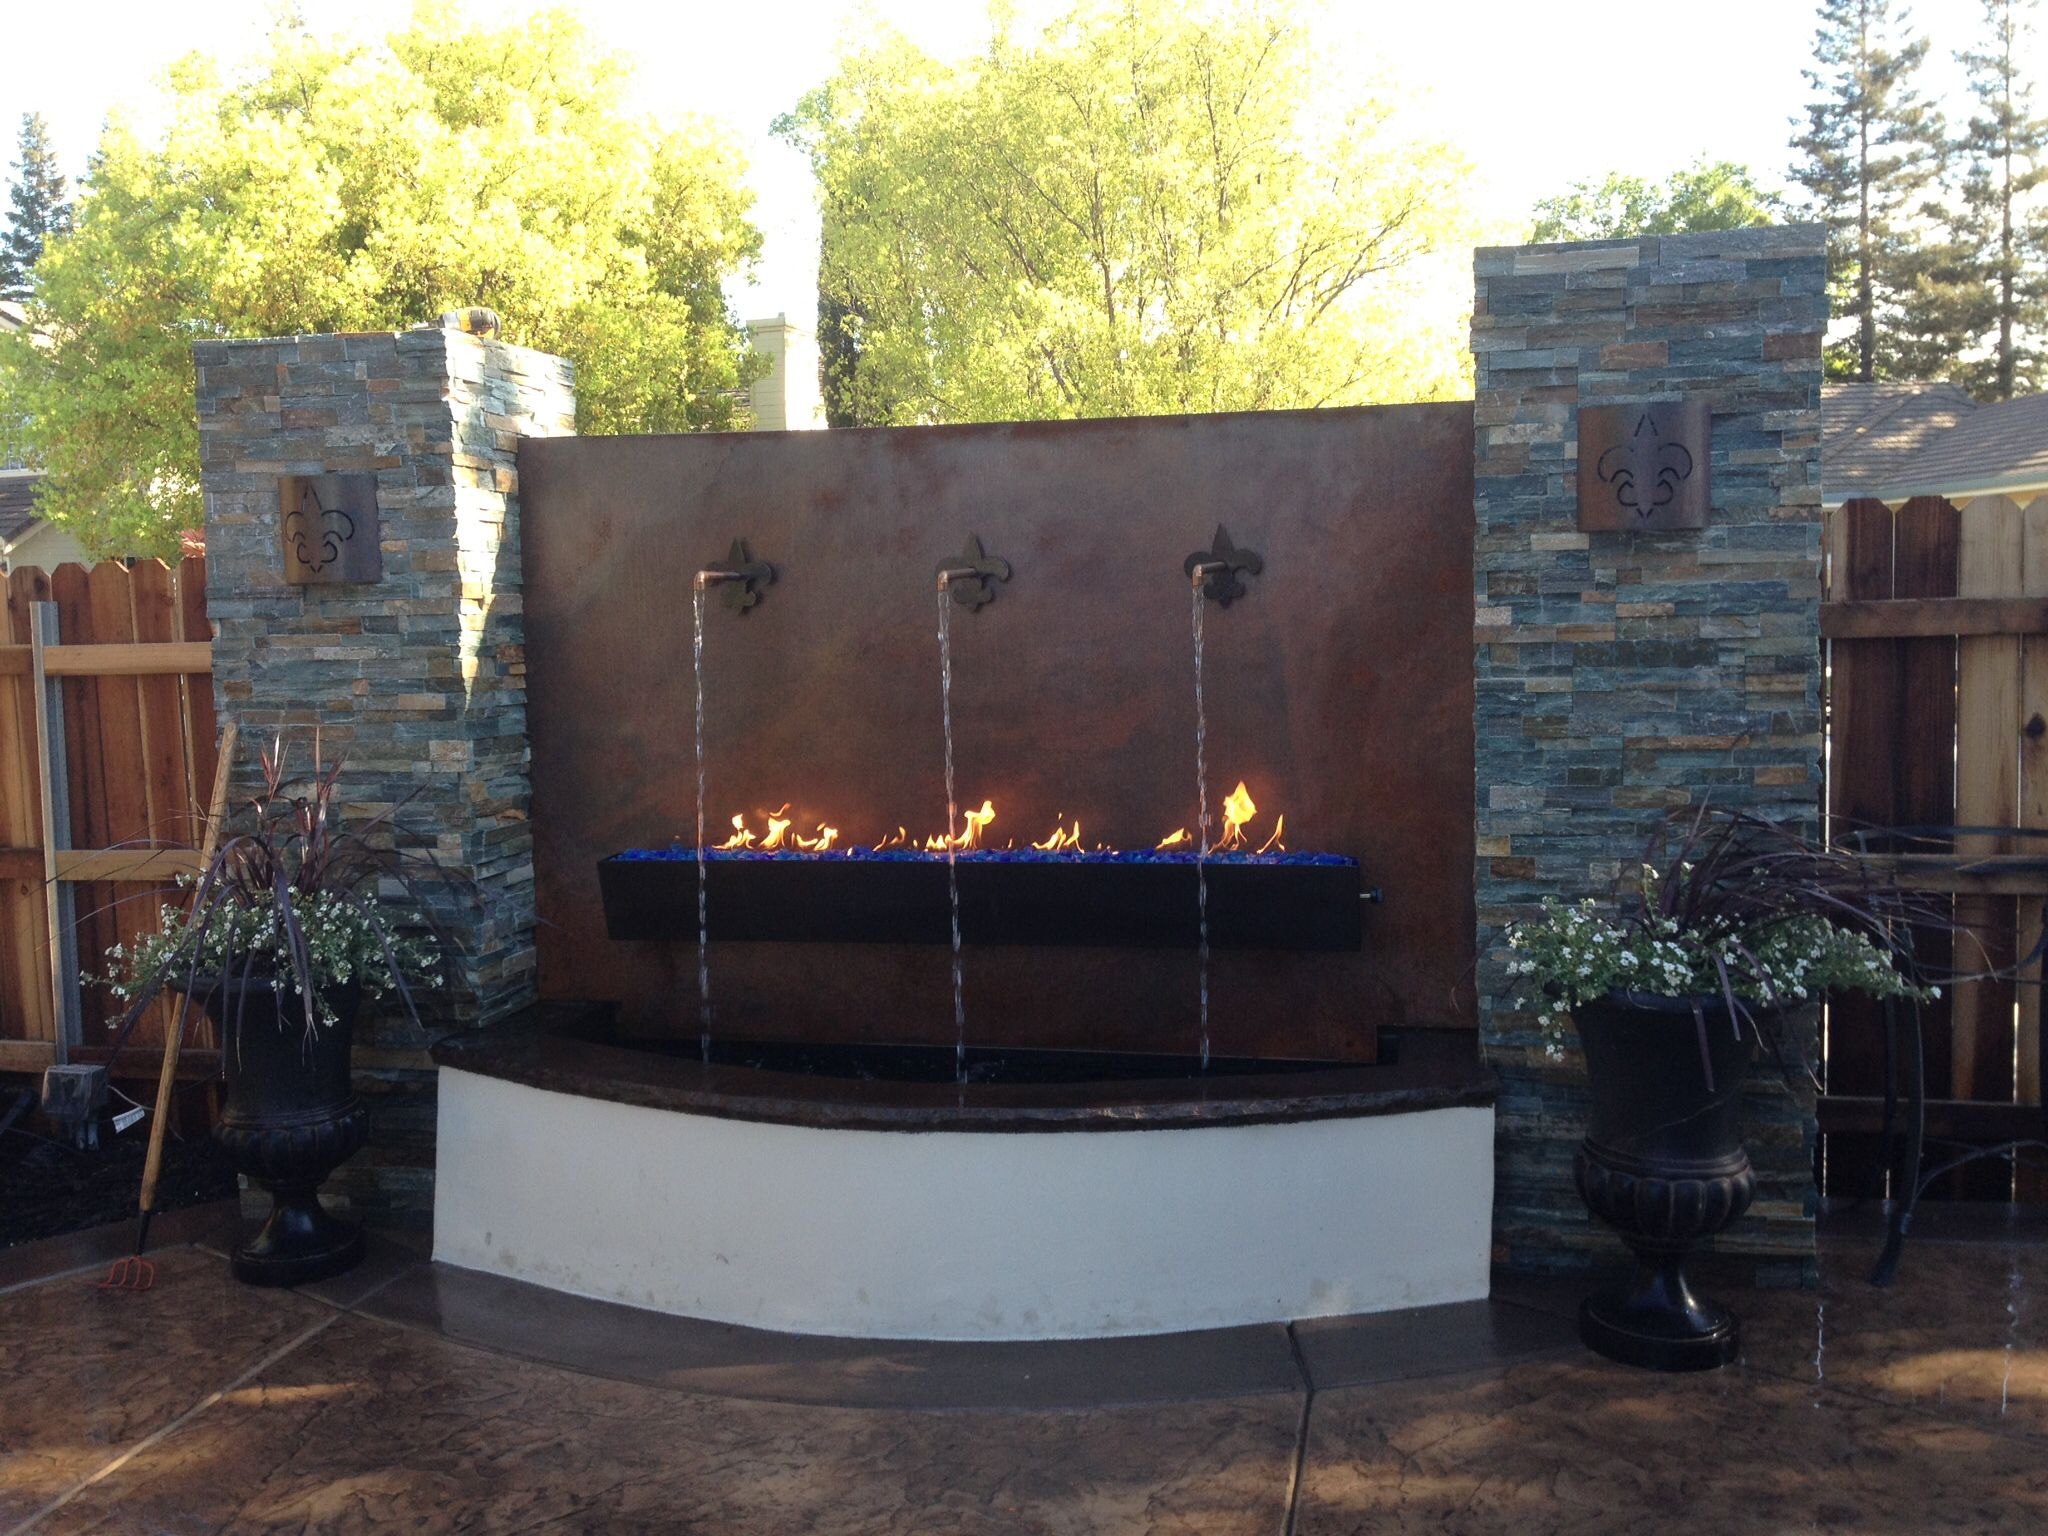 a33aff49e6e09f07cbd628b9048f5fff Top Result 50 Awesome Prefab Outdoor Fireplace Photography 2018 Hiw6